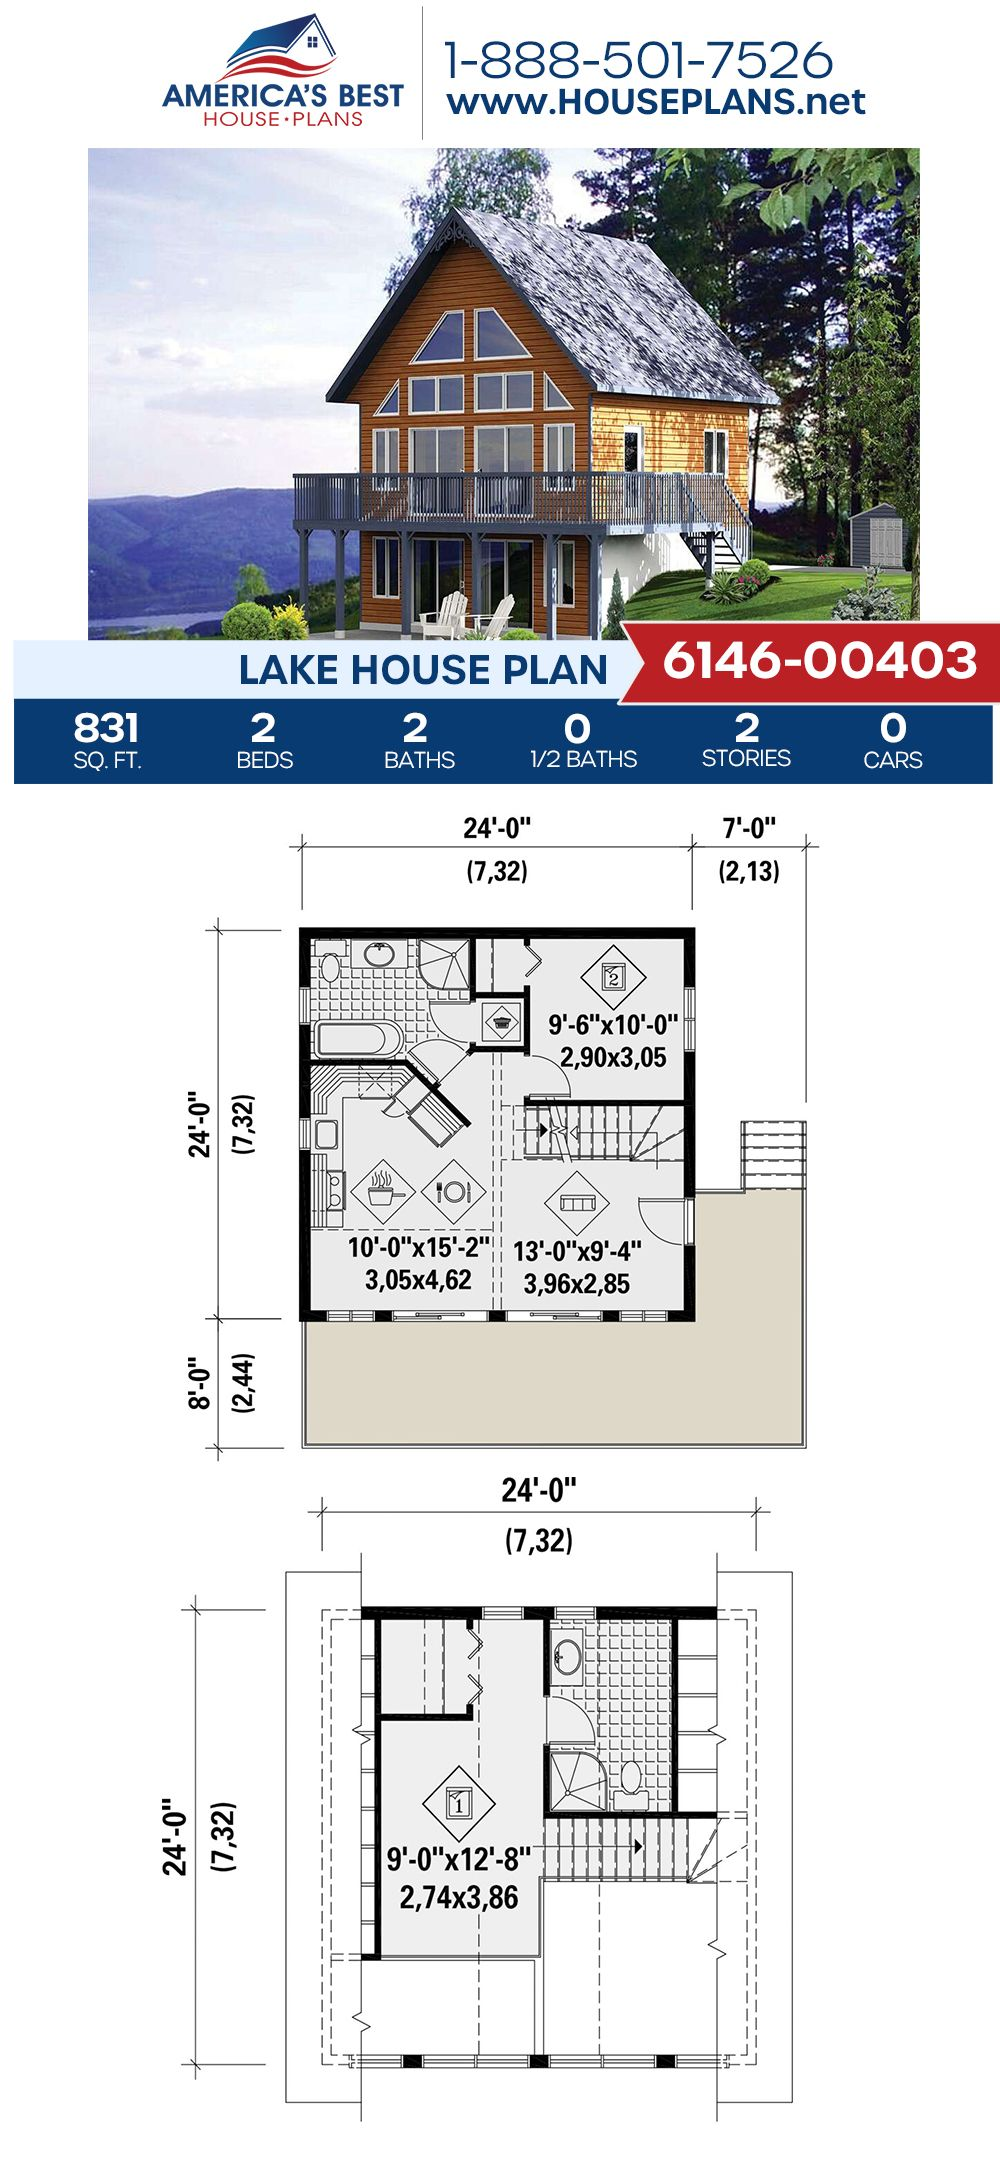 House Plan 6146 00403 Lake Front Plan 831 Square Feet 2 Bedrooms 2 Bathrooms Lake House Plans House Plans Lake House